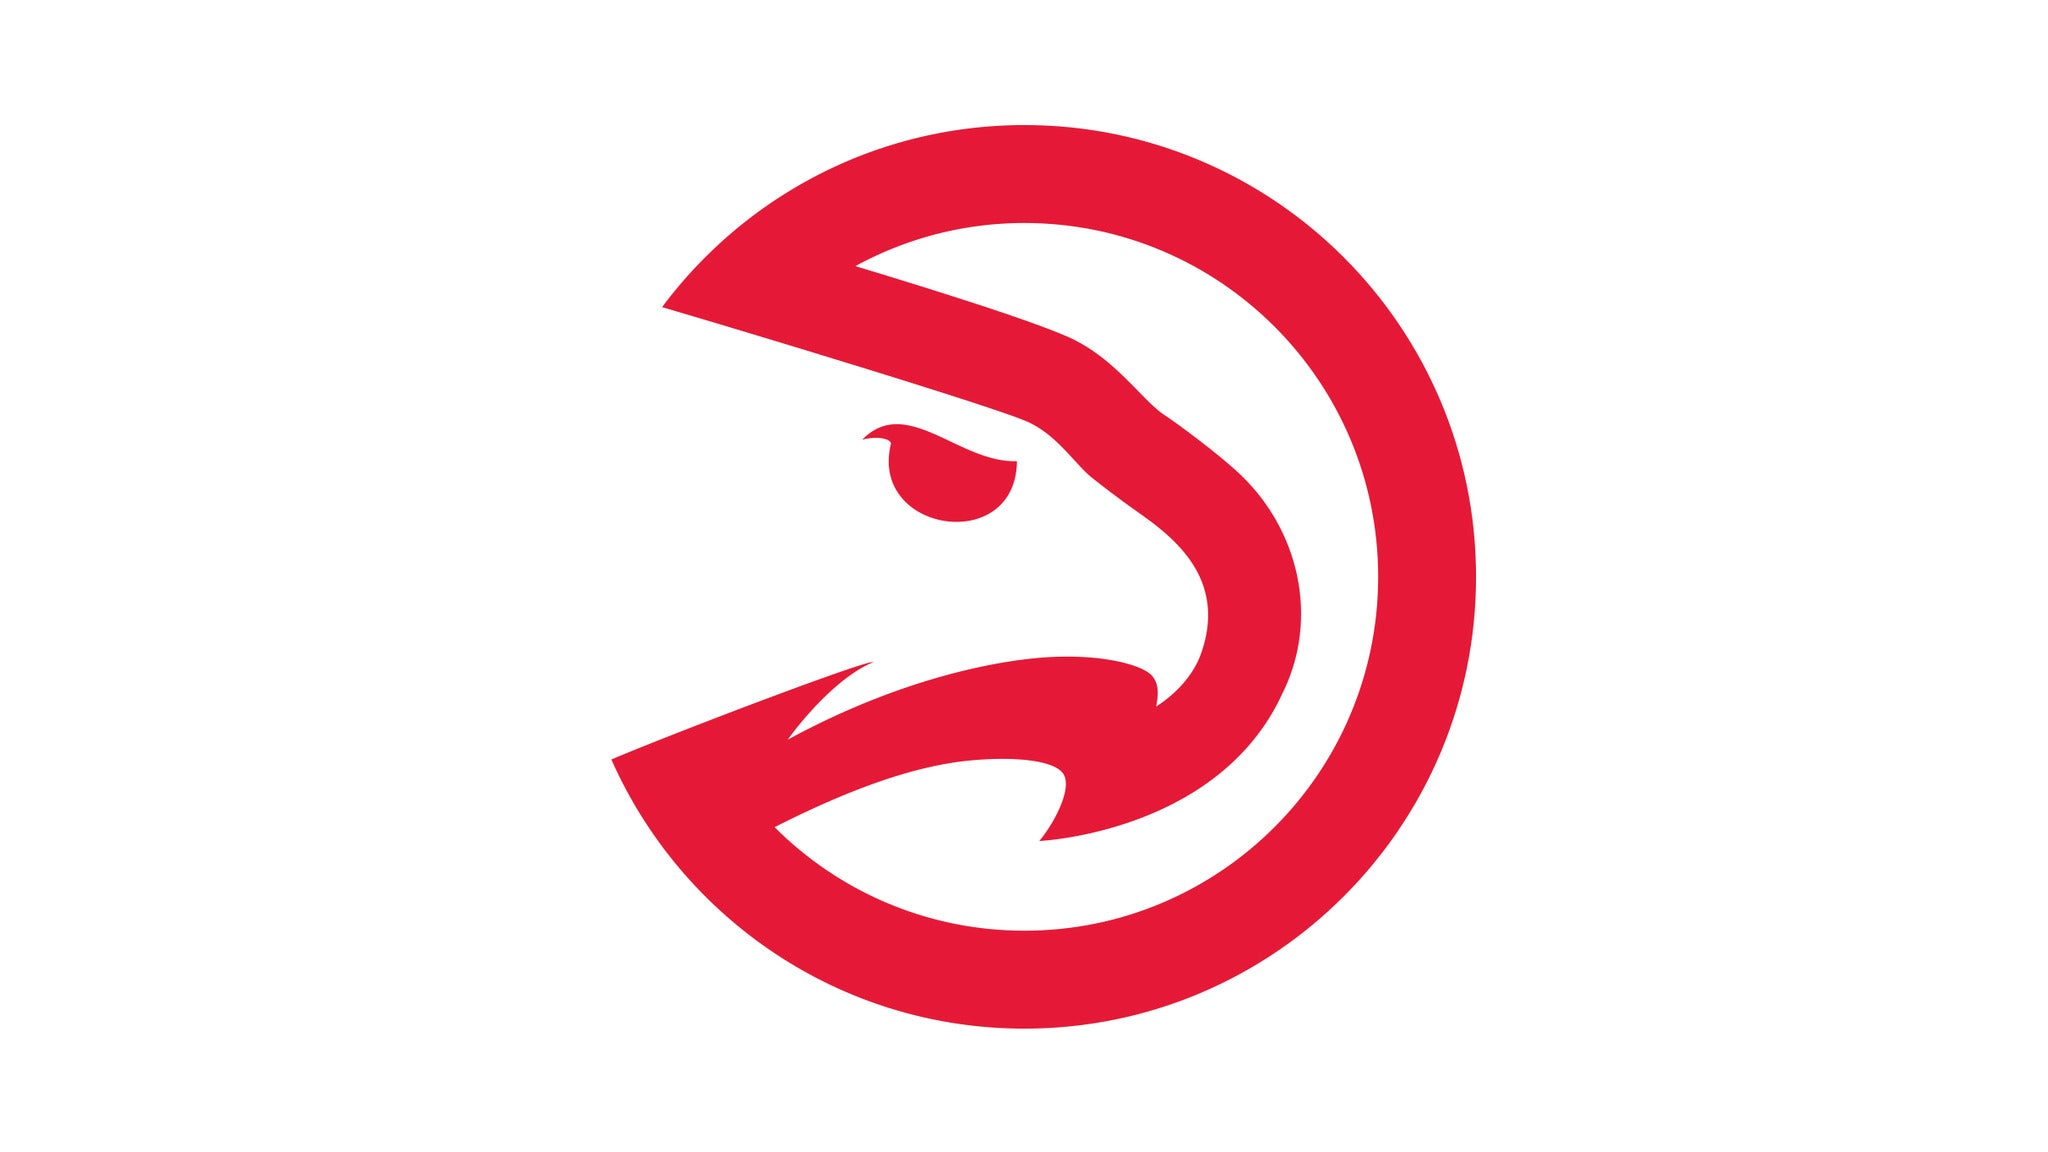 Atlanta Hawks v Milwaukee Bucks at Philips Arena - Atlanta, GA 30303